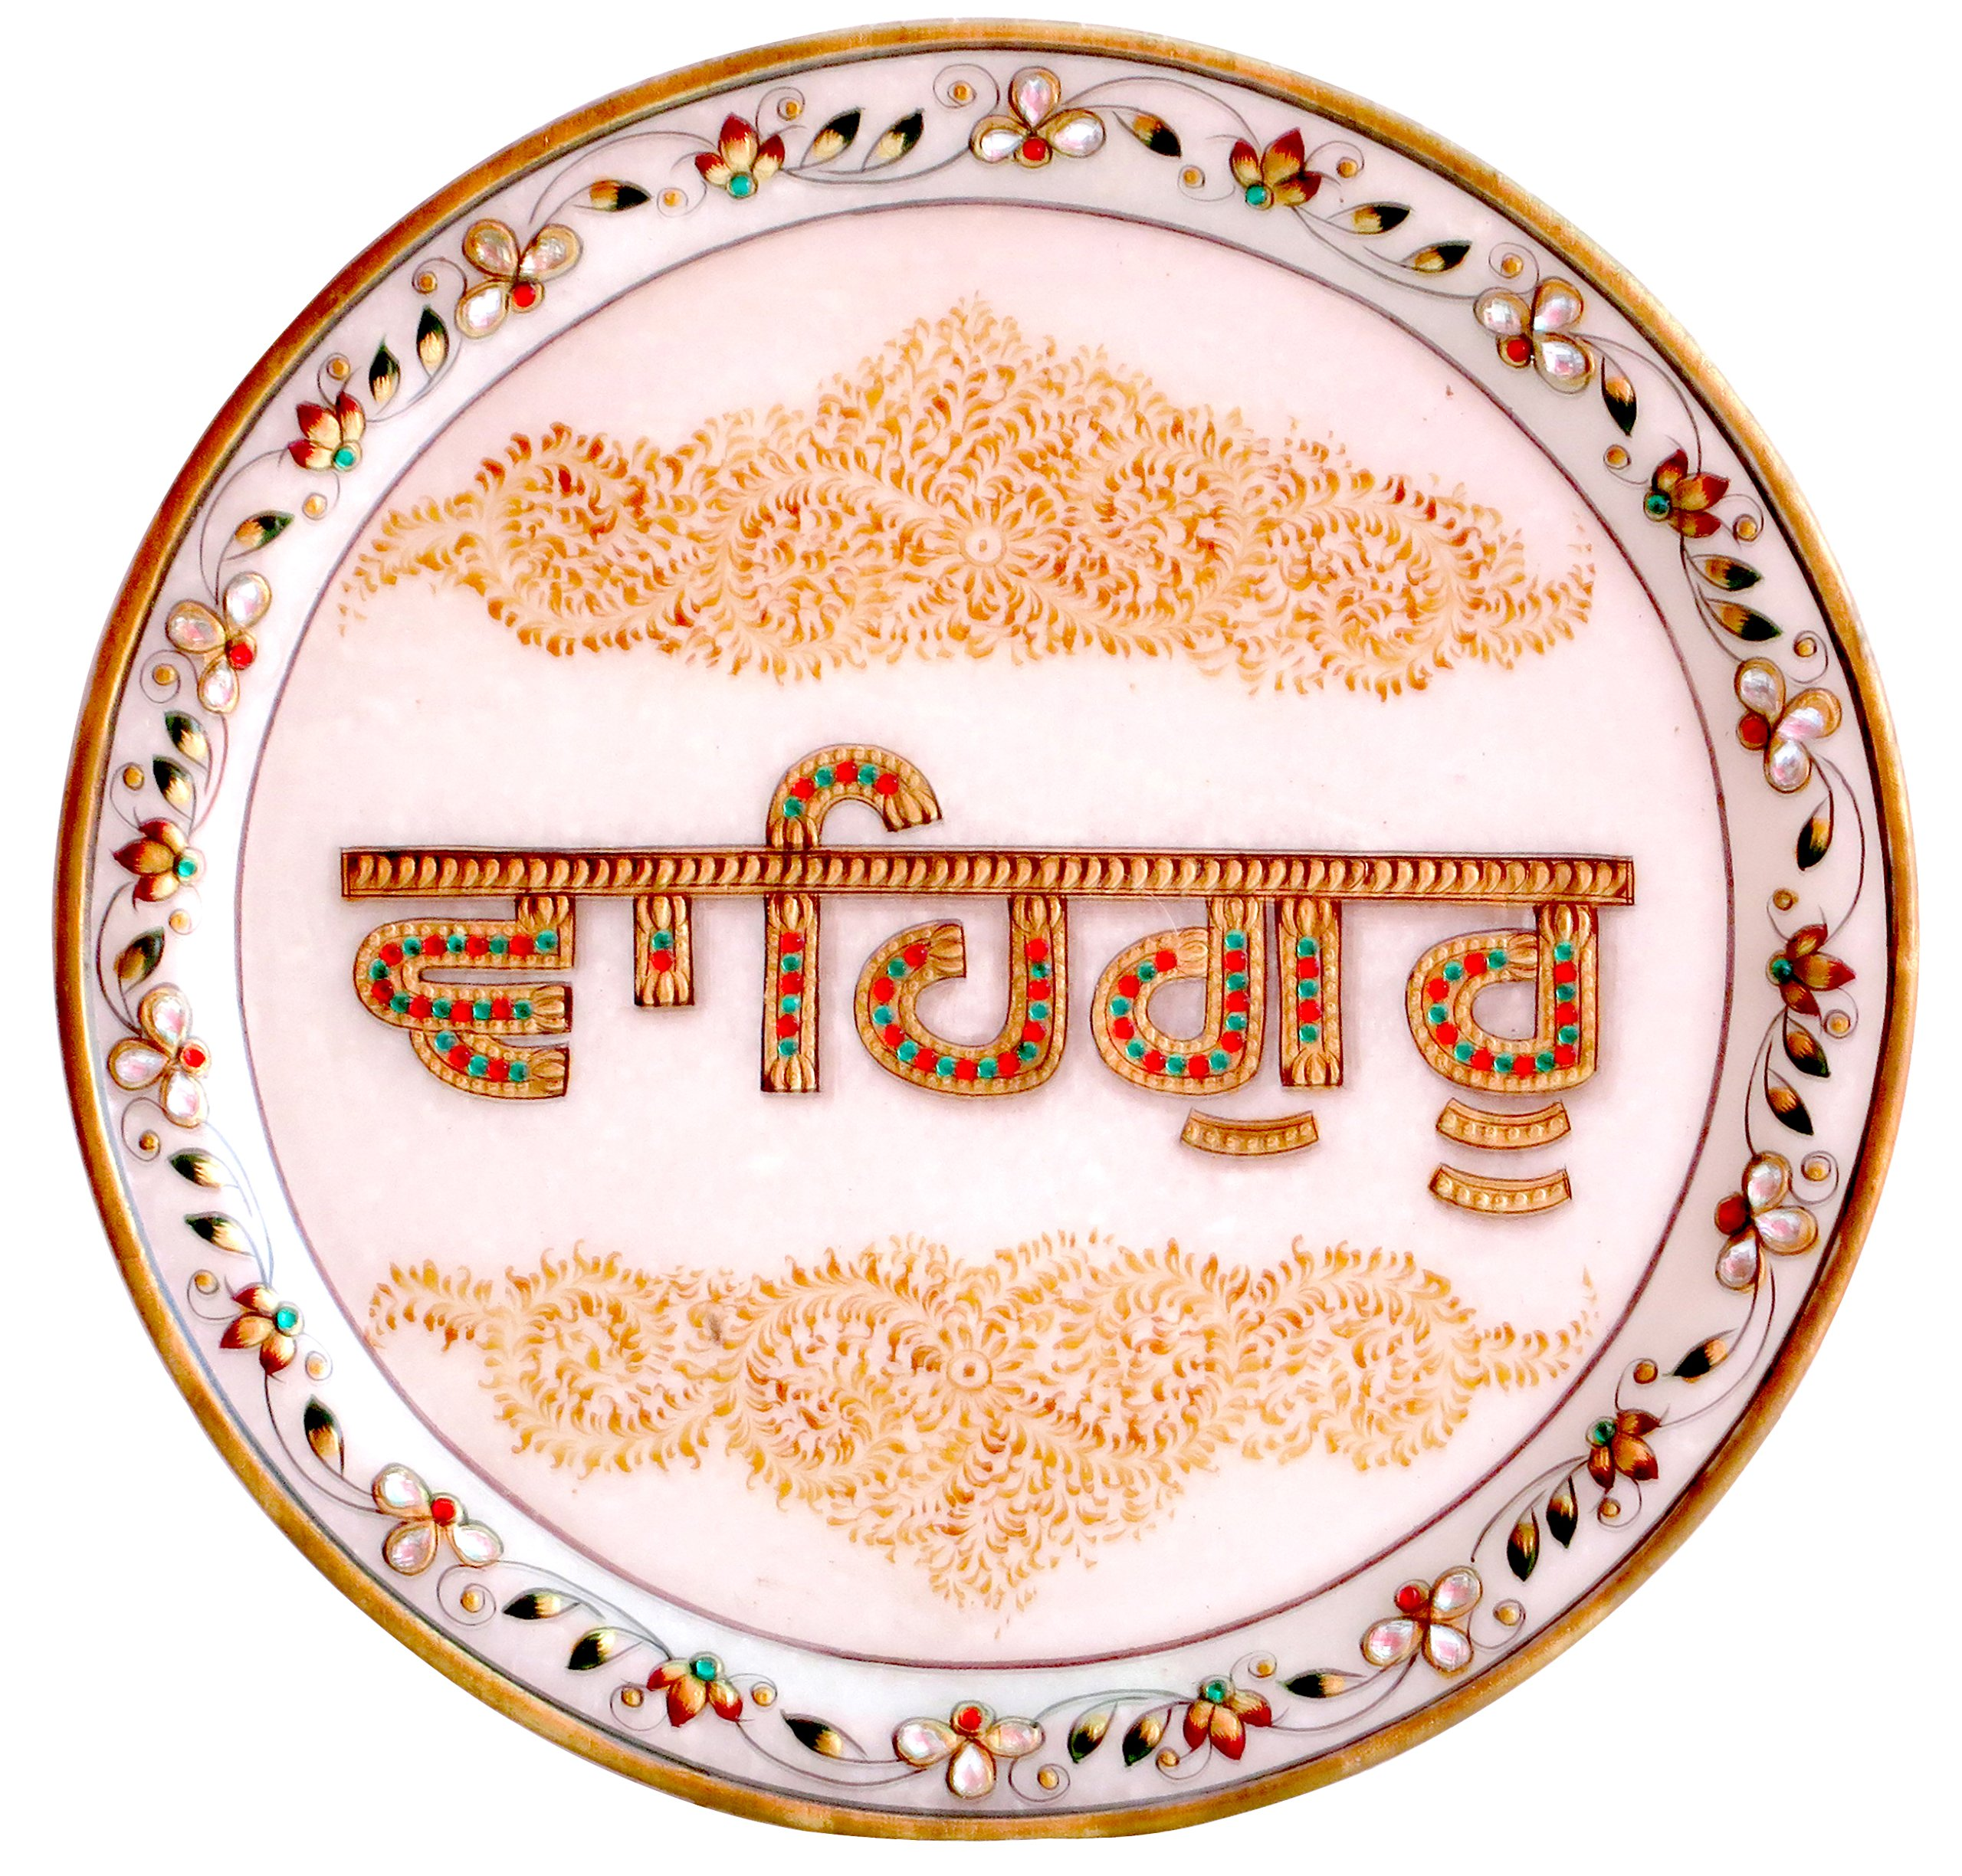 Wahe Guru, Painting of Sikh Religious Word on Marble Plate Round, a Spritual and Religious Decorative Item for Home Decor and Religious Purpose